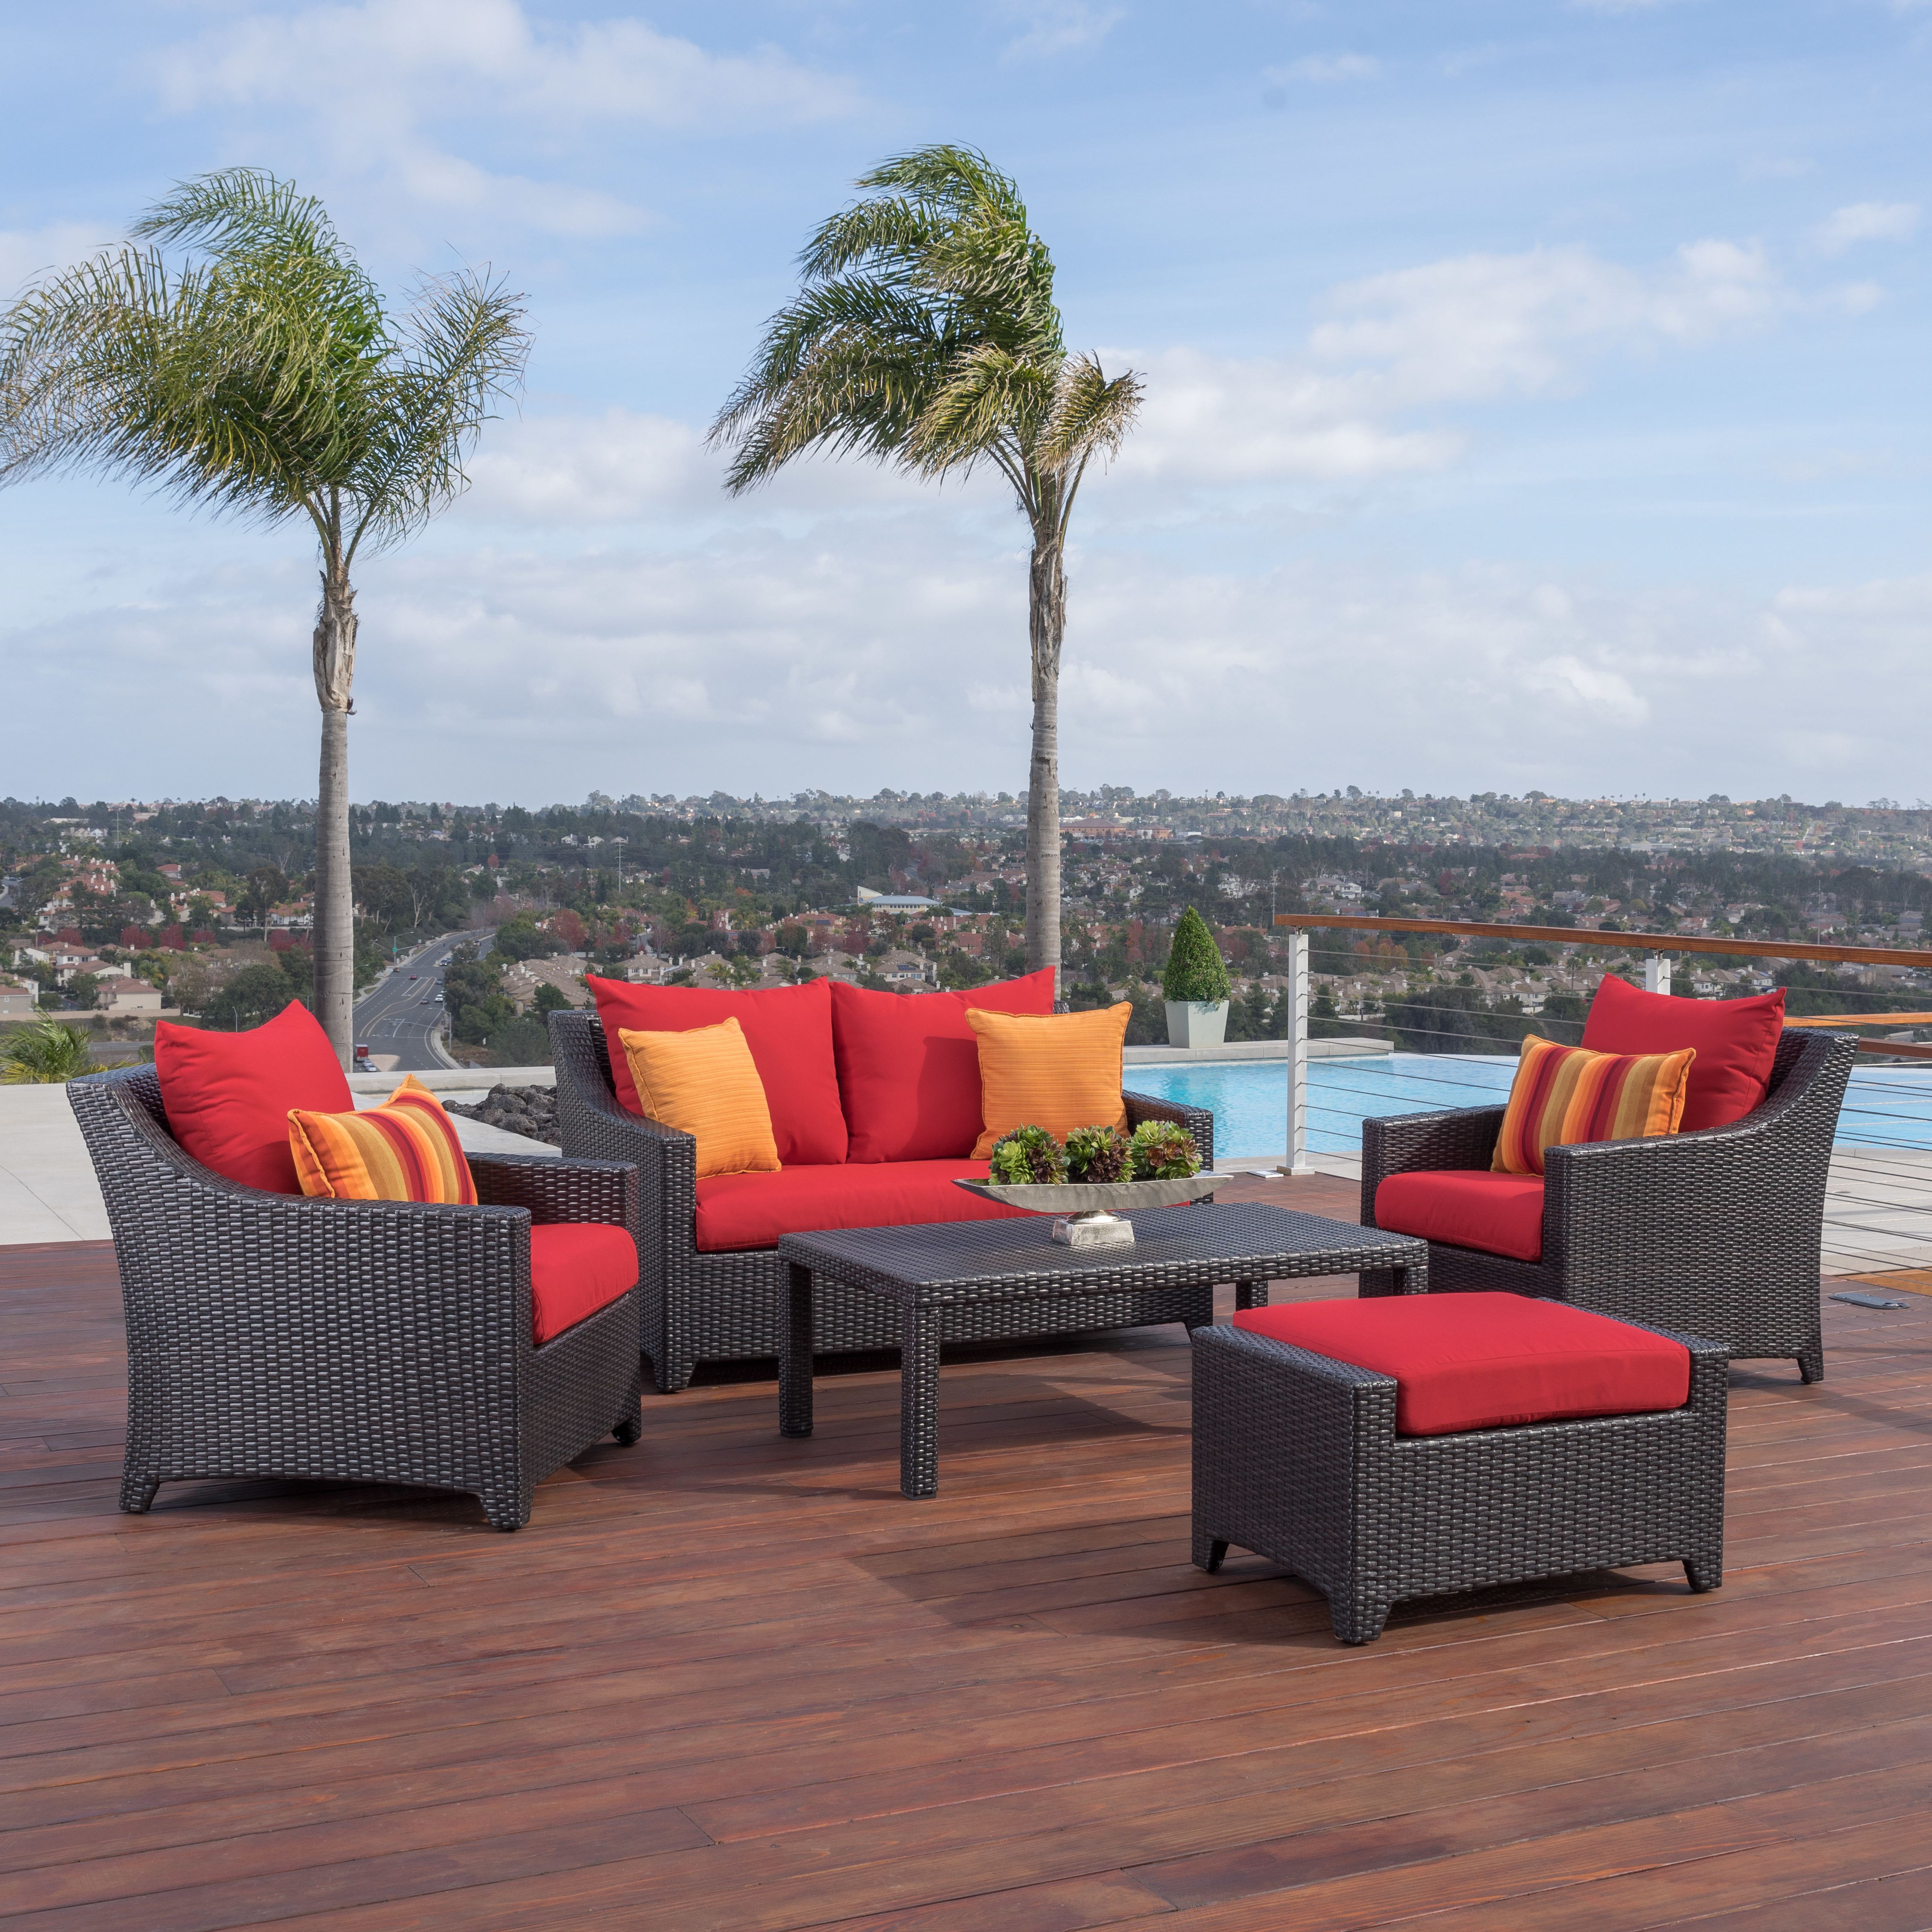 Northridge Loveseats With Cushions With Regard To Well Liked Northridge 5 Piece Sunbrella Sofa Set With Cushions (View 15 of 20)